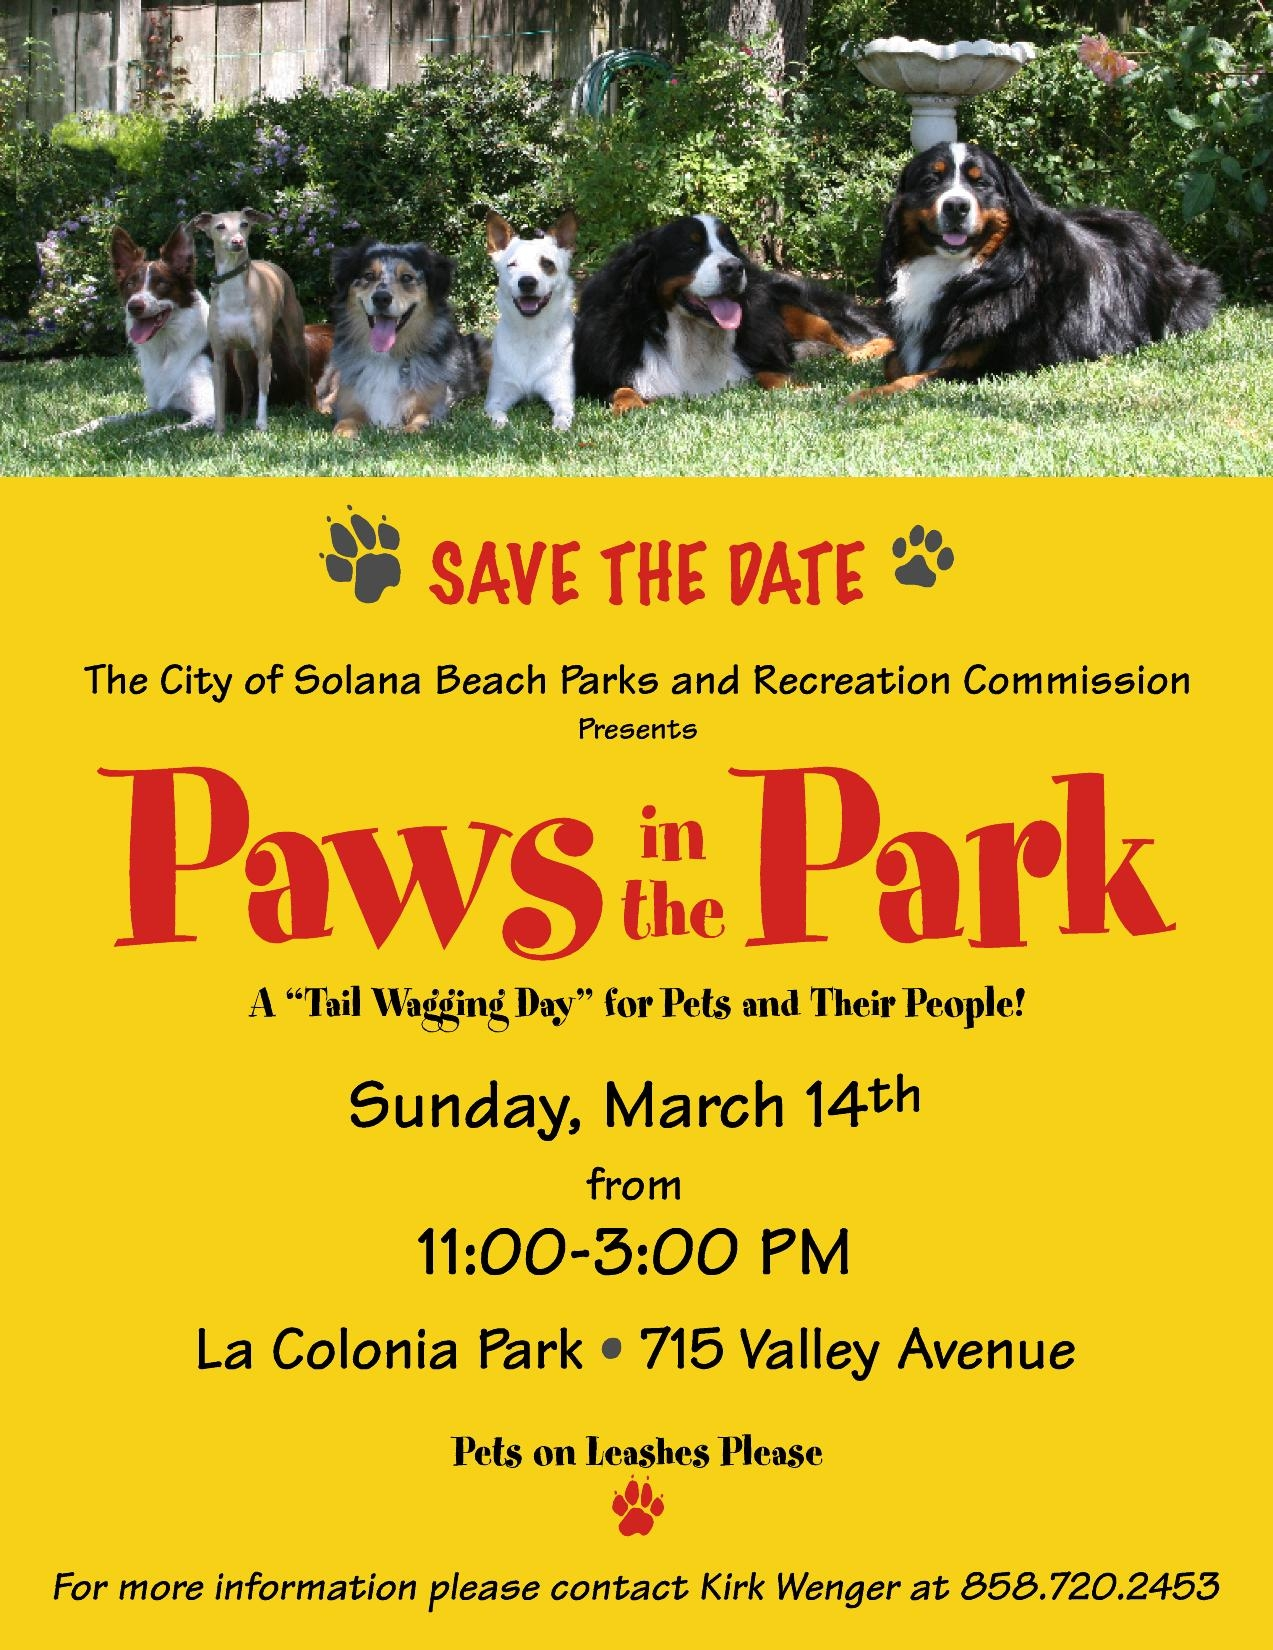 Solana Beach Paws in the Park